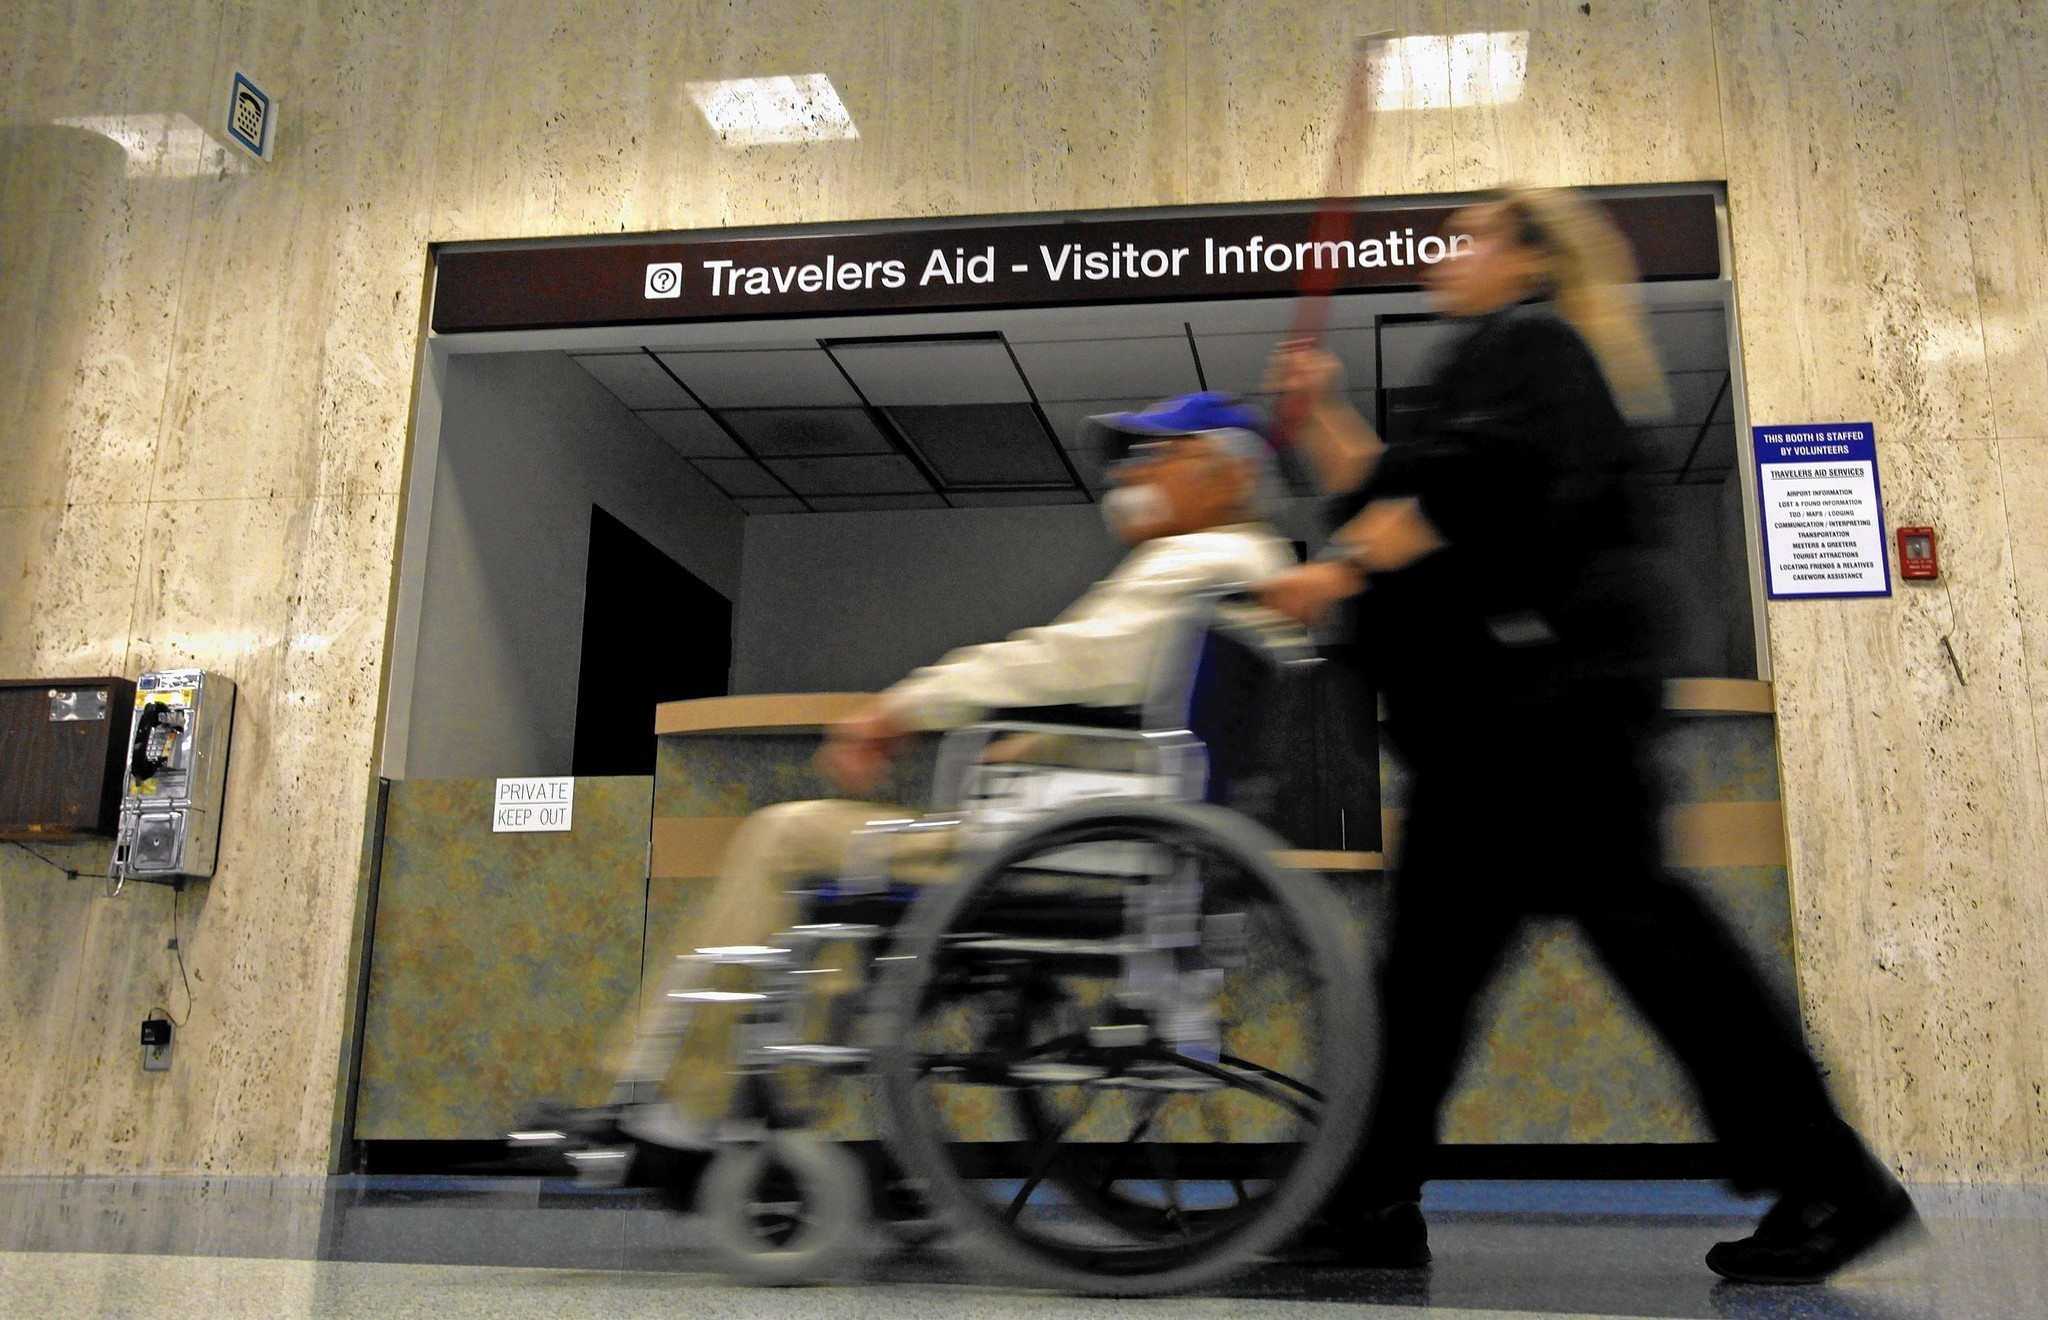 Handicap Bathroom Airplane airline restrooms may challenge wheelchair users; here's expert